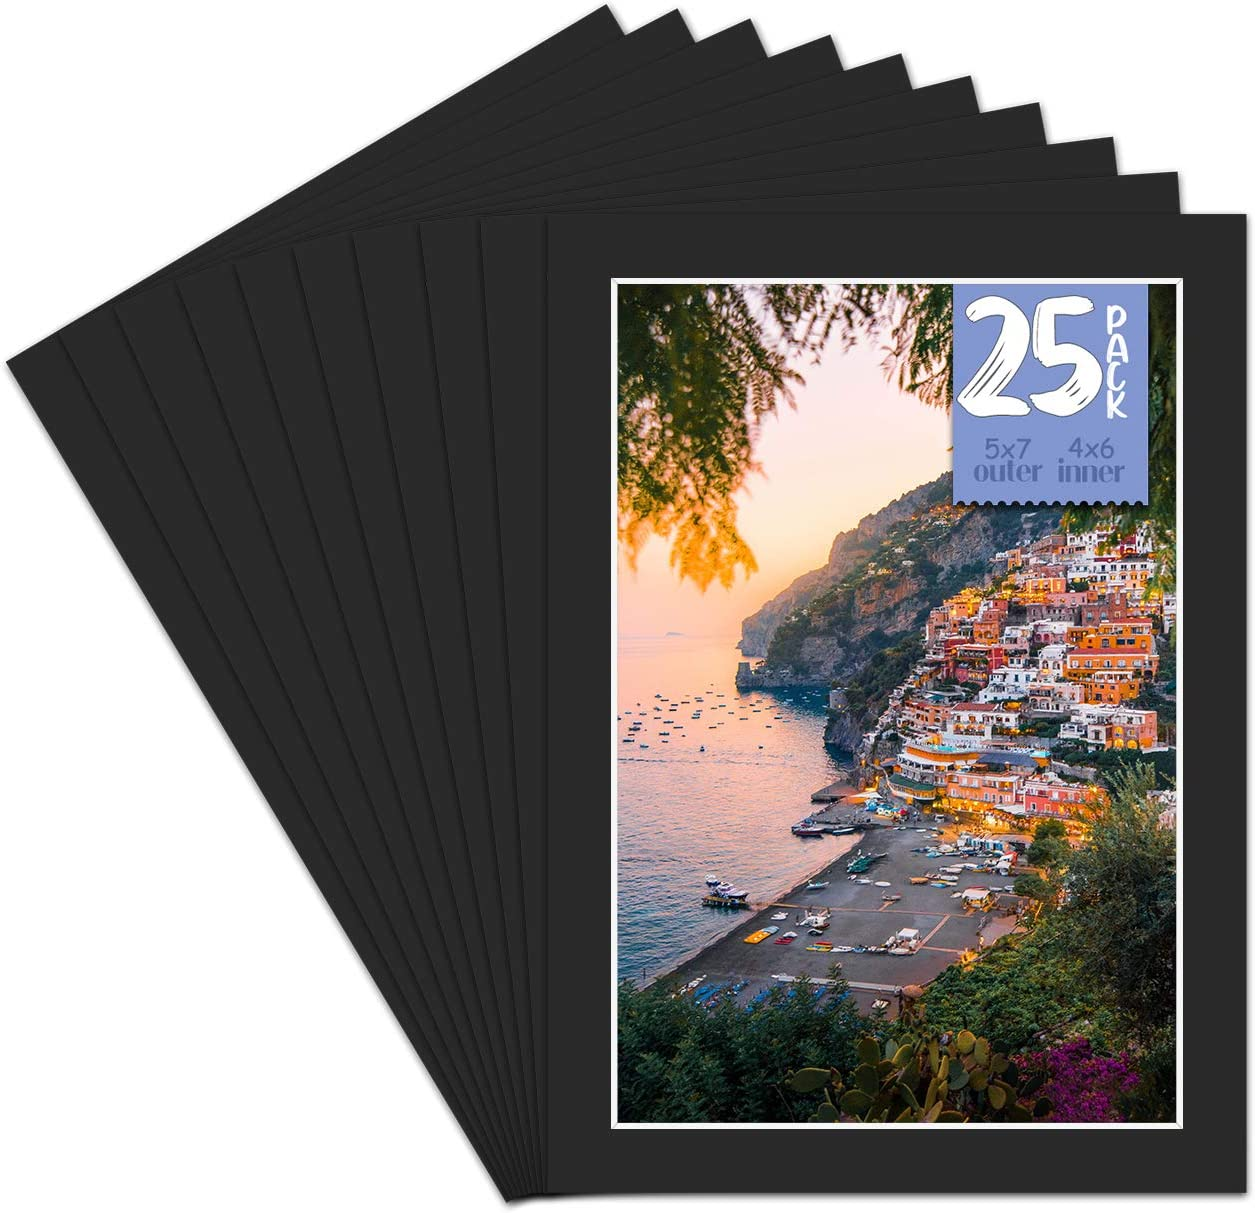 Events Bevel Cut Golden State Art Signature Friendly Black Mat 5x7 for 4x6 4-Ply Thick Prints Mats Only Great for Photos Acid Free Pictures 20-Pack